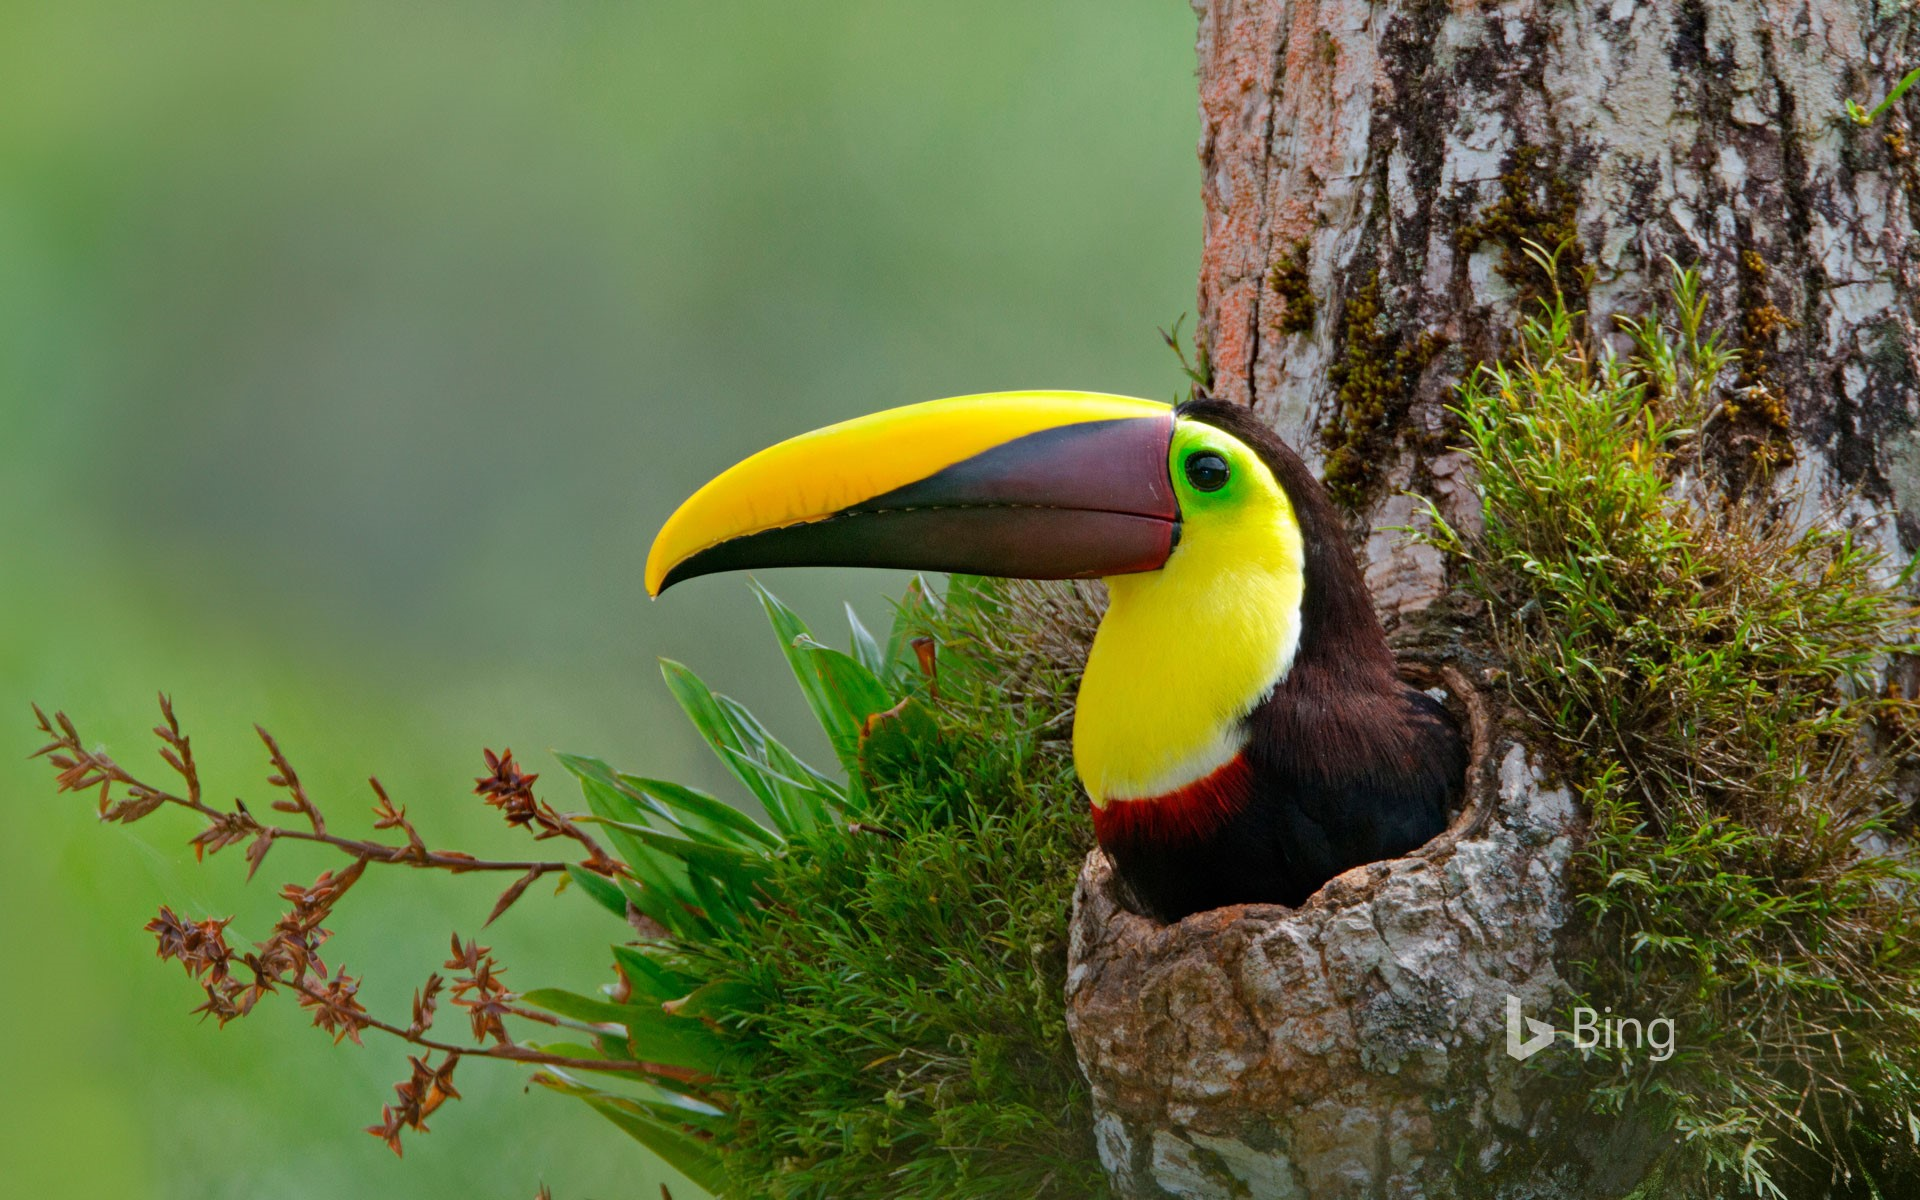 Chestnut-mandibled toucan nesting in the cavity of a tree, Costa Rica